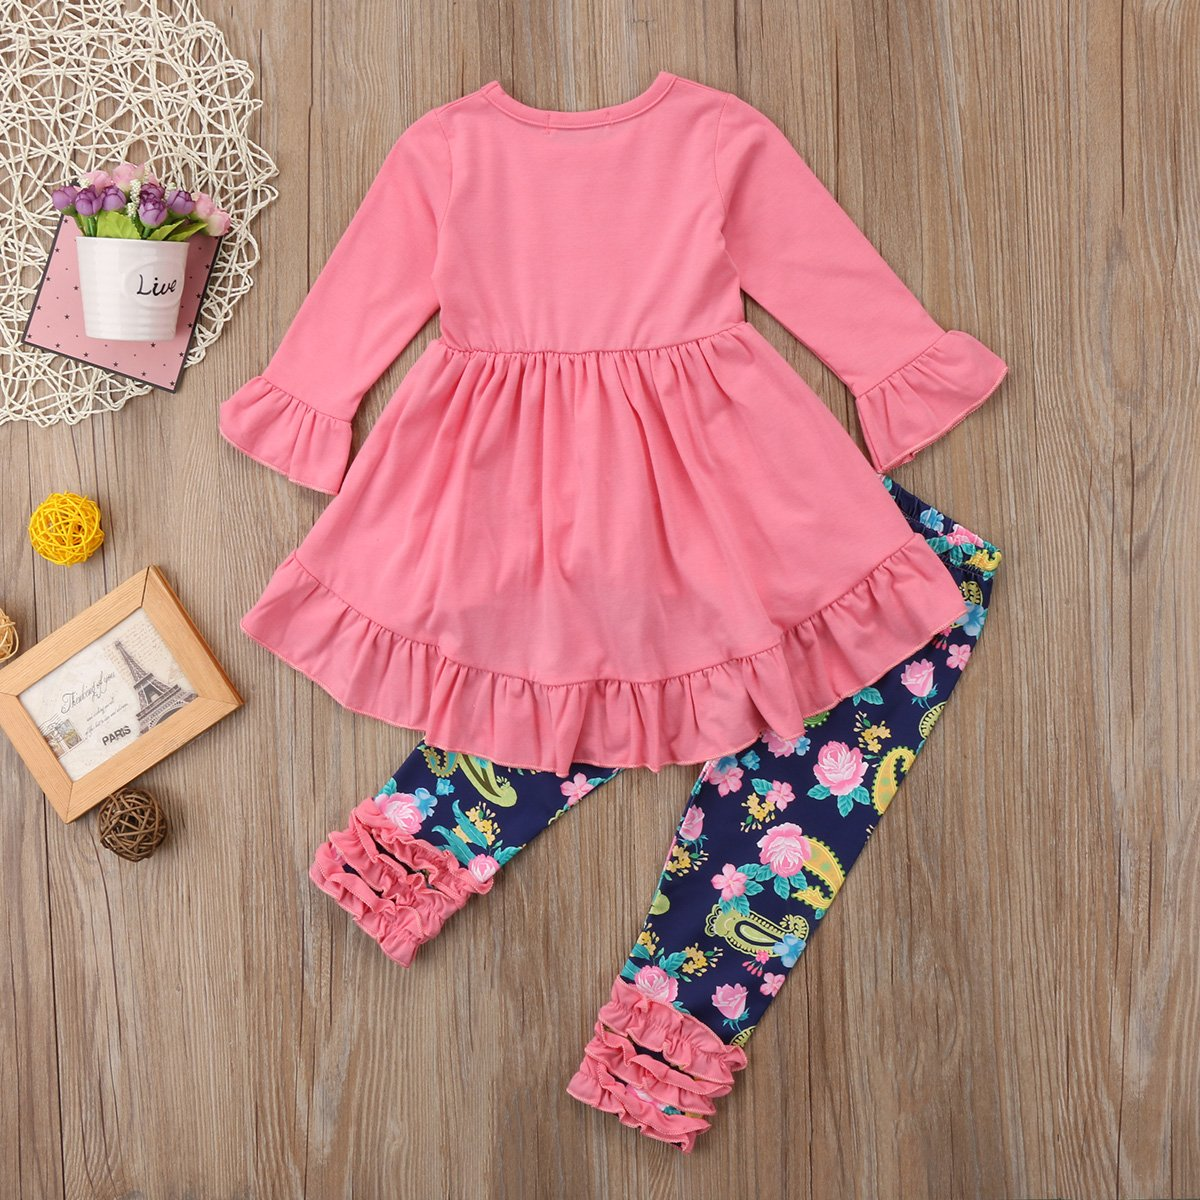 Fashion Baby Girls Pink Ruffle T-Shirt Top+Floral Long Pant Spring Outfits